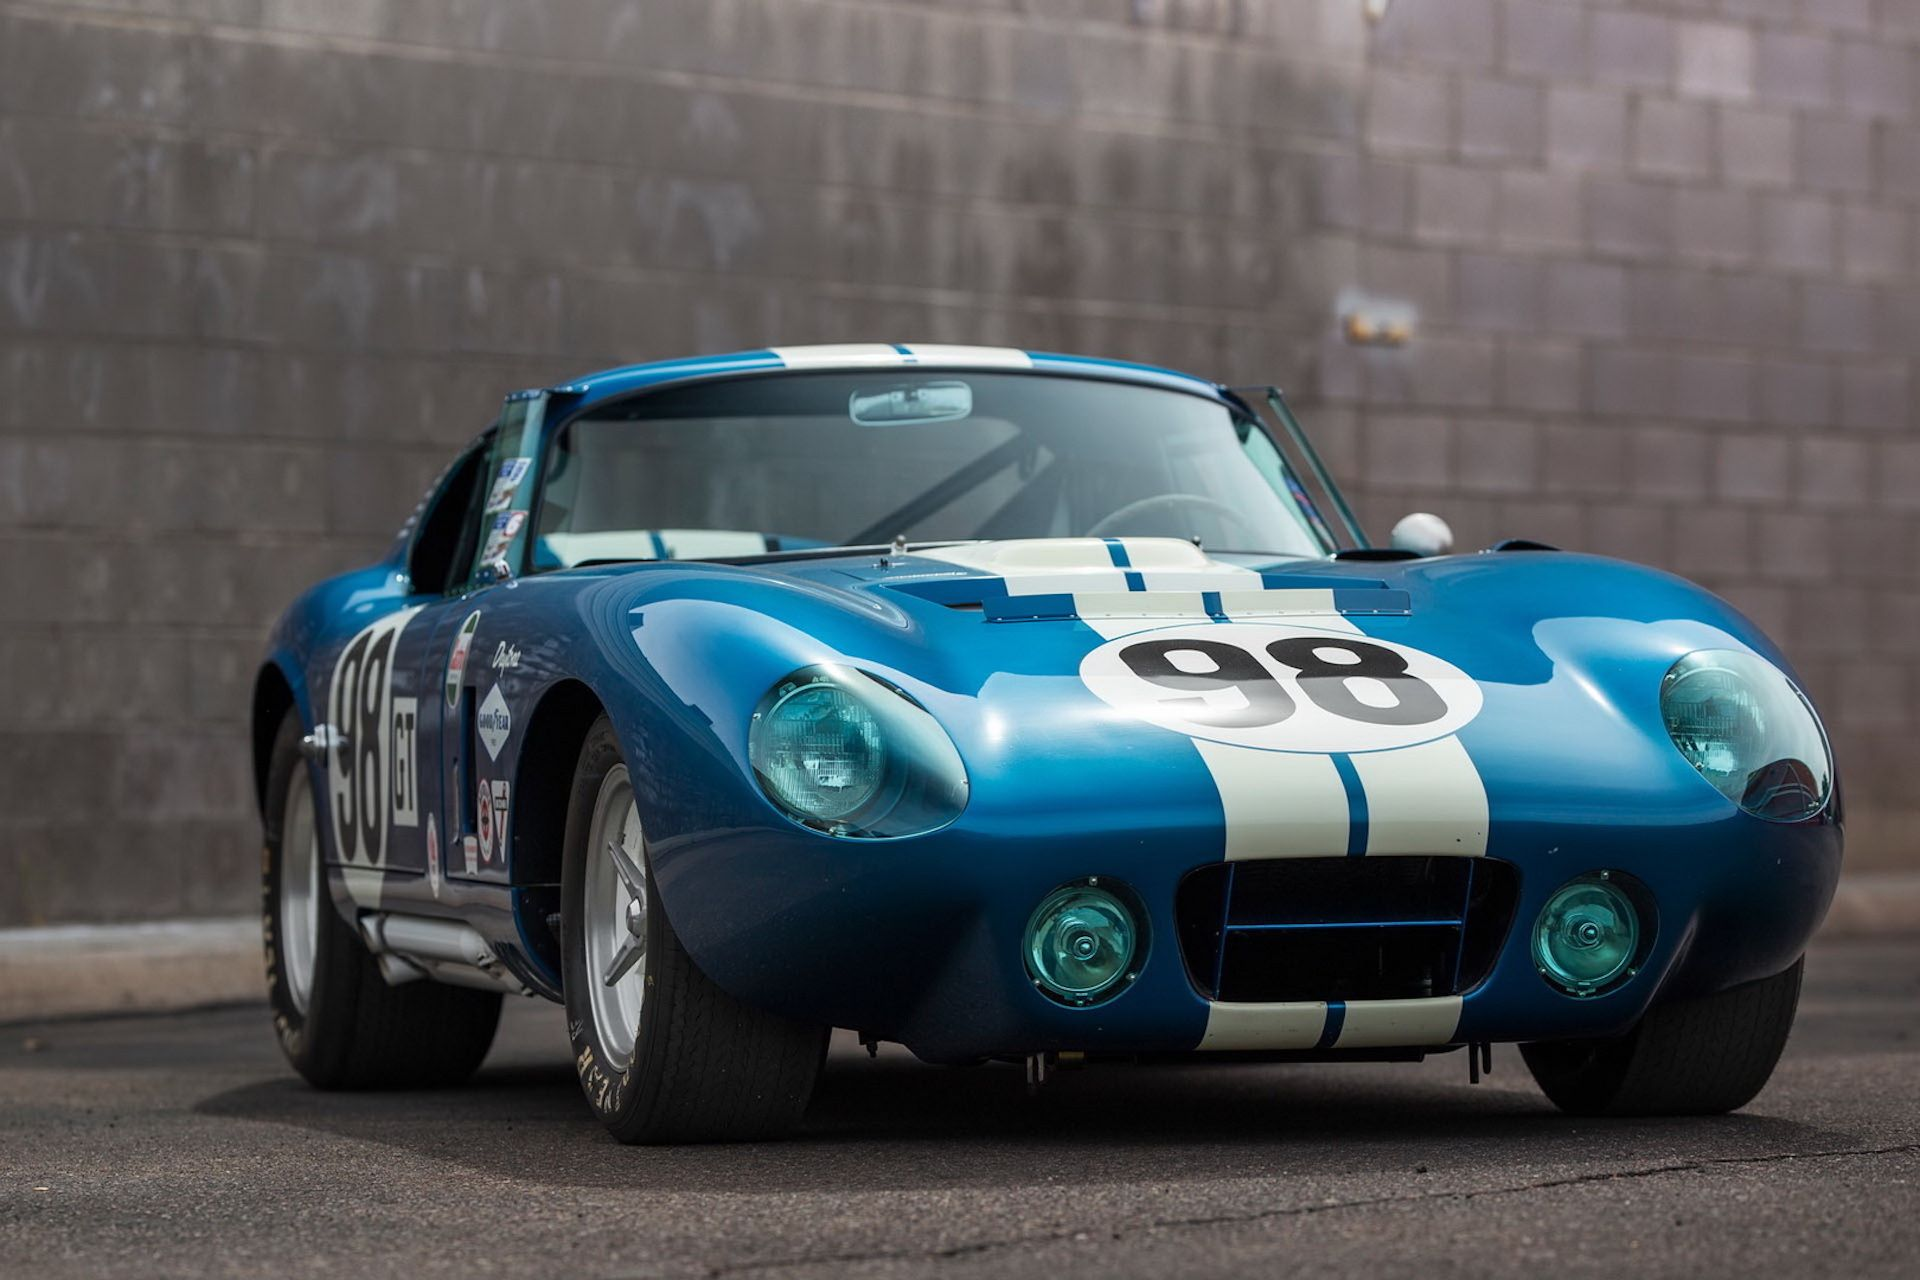 Daytona-Cobra-Carroll-Shelby-auction-AC-Cobra-5